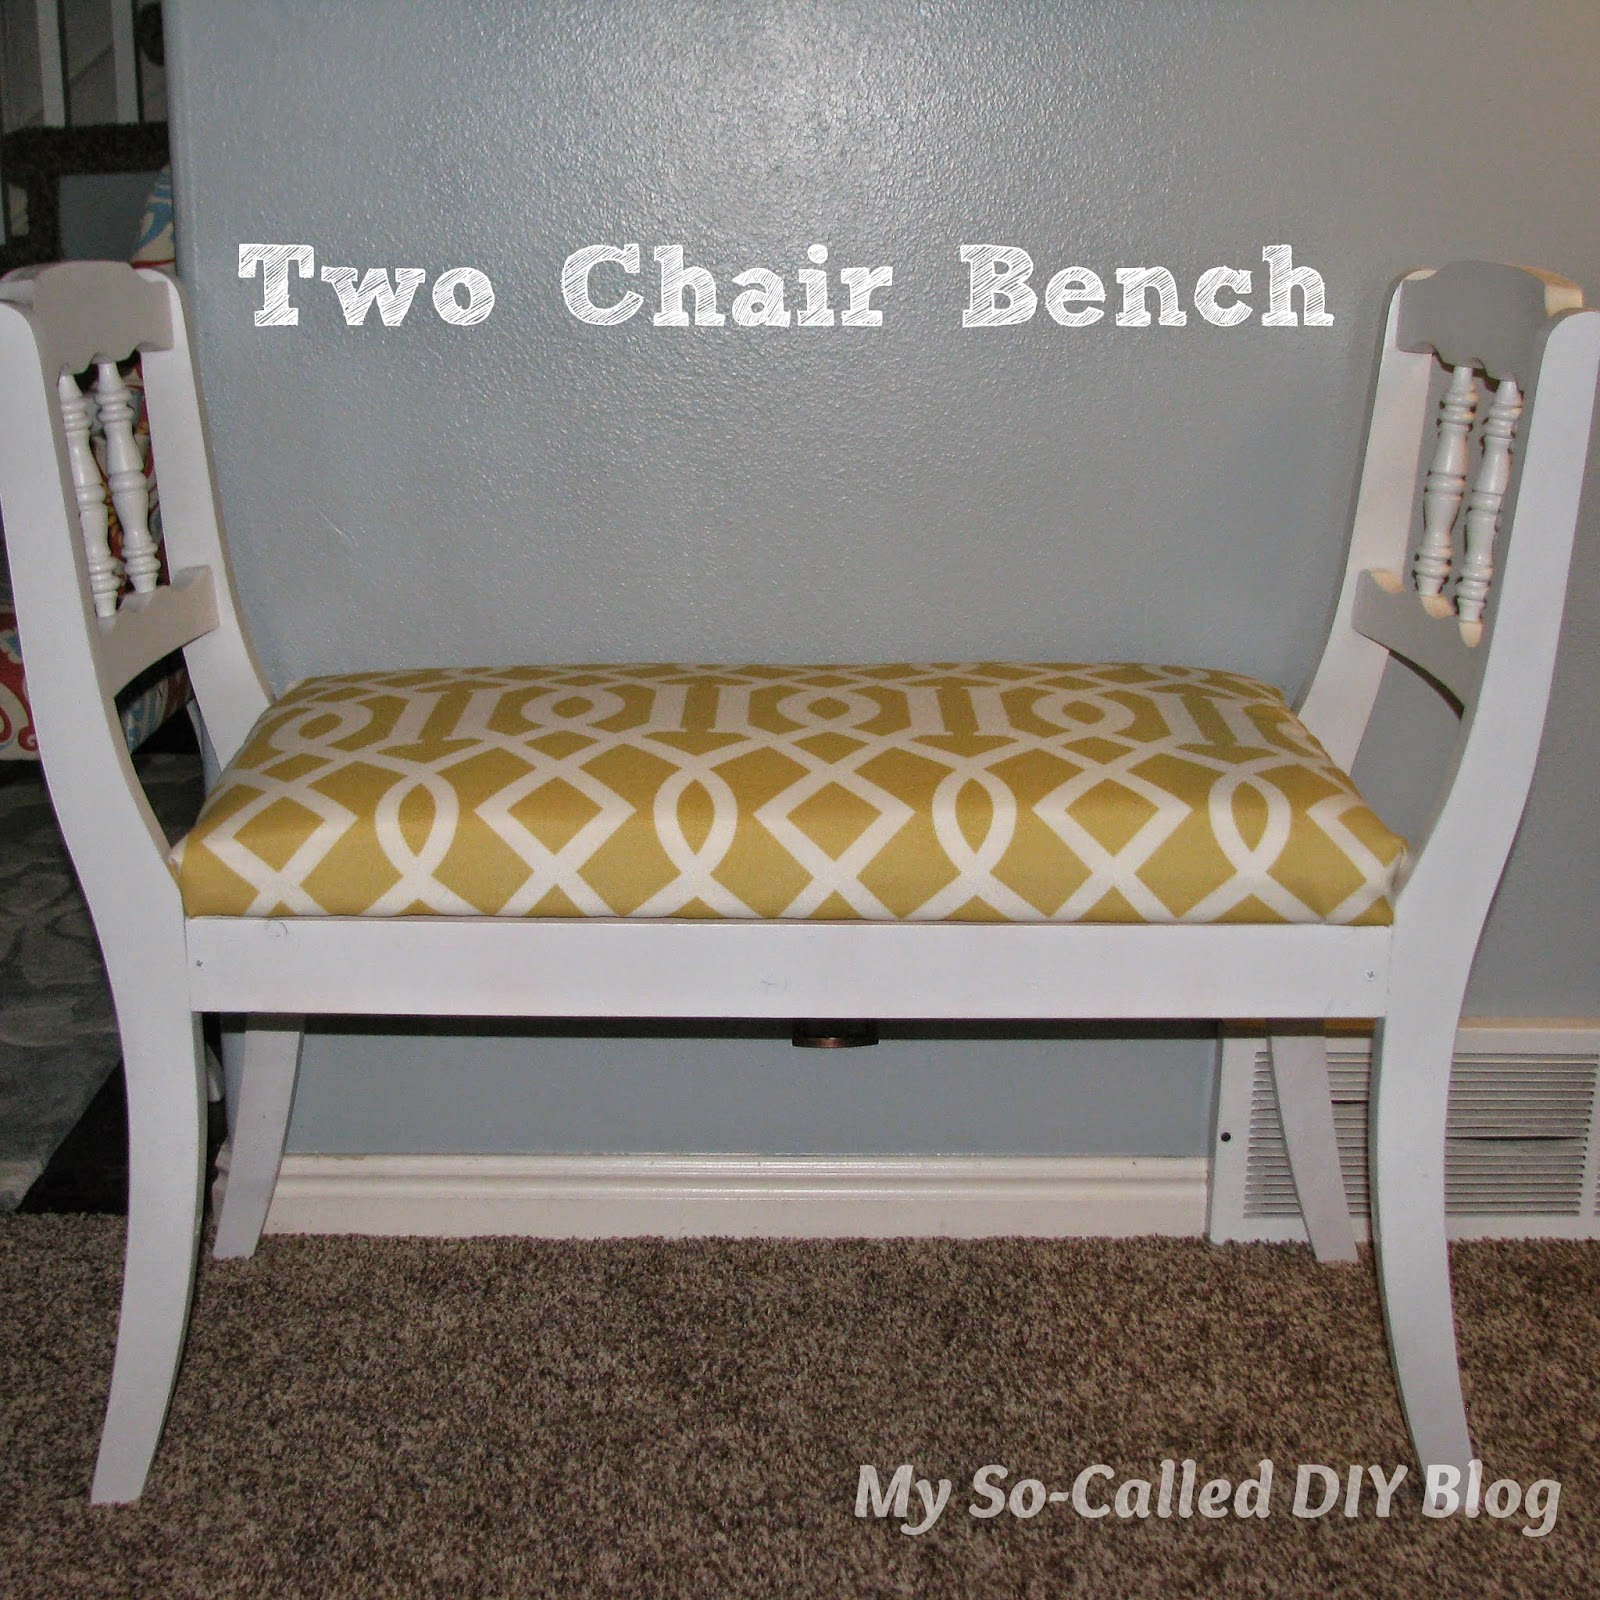 My So-Called DIY Blog: Two Chair Bench